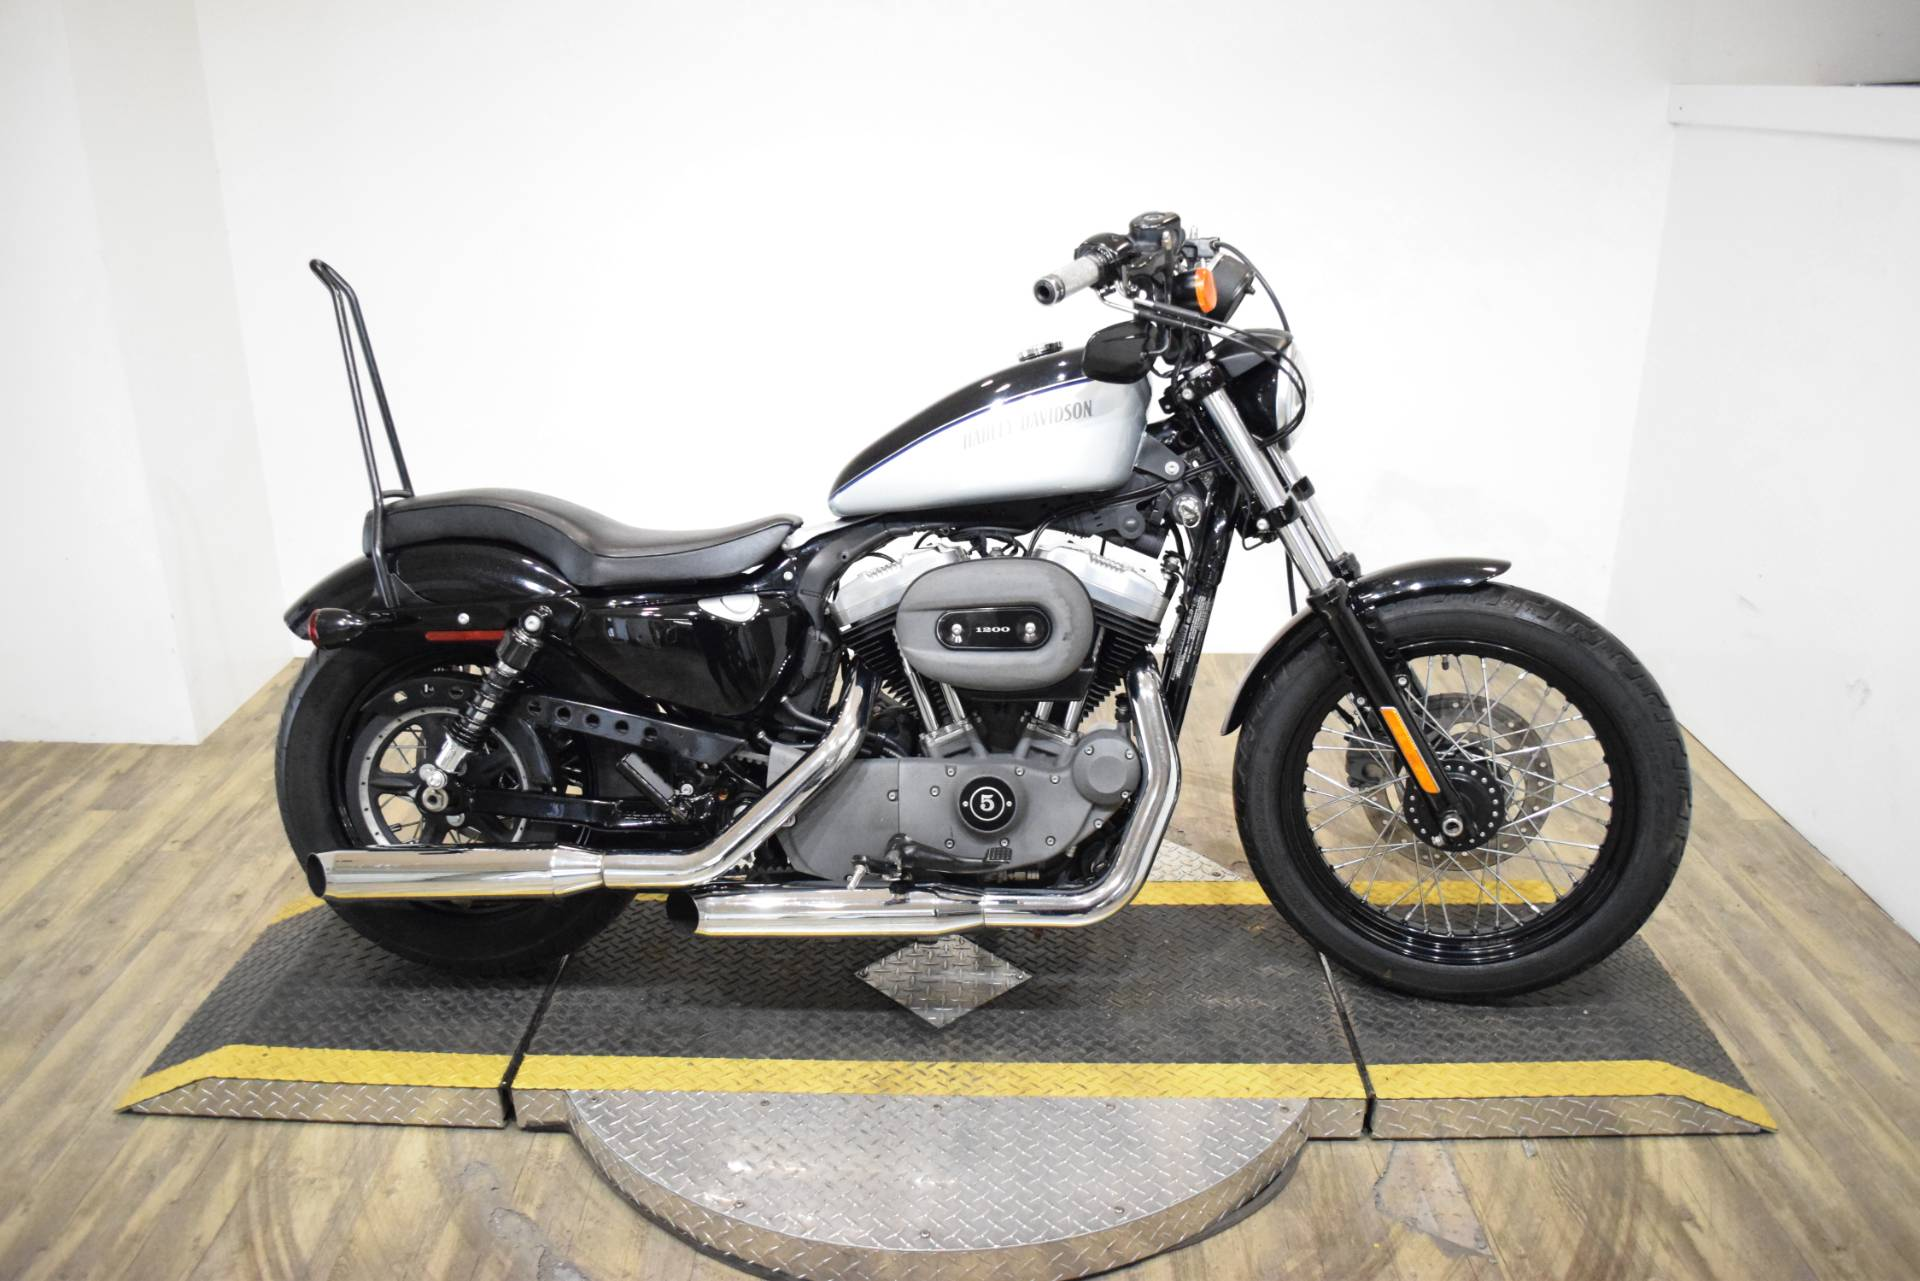 2012 Harley Davidson Sportster 1200 Nightster Used Motorcycle For Sale Wauconda Illinois